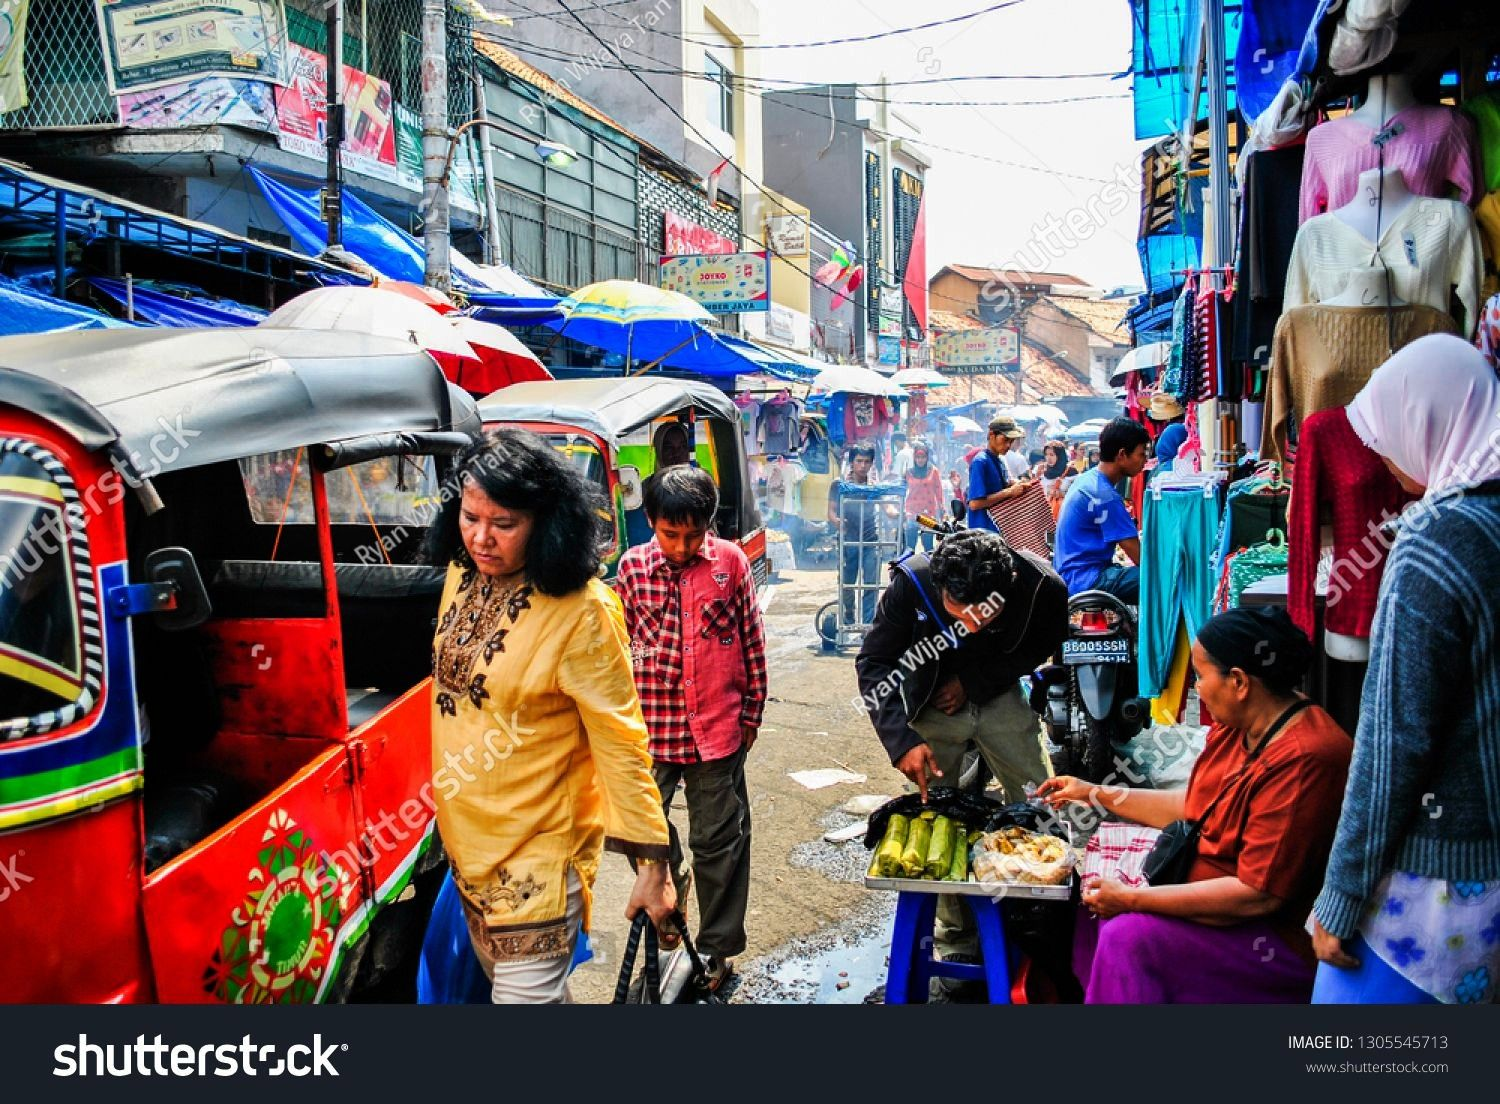 Indonesia  December 19 2009 Crowded street market in Jakarta with public transport bajaj people old buildings and street vendors street food and fruits seller Jakarta Ind...